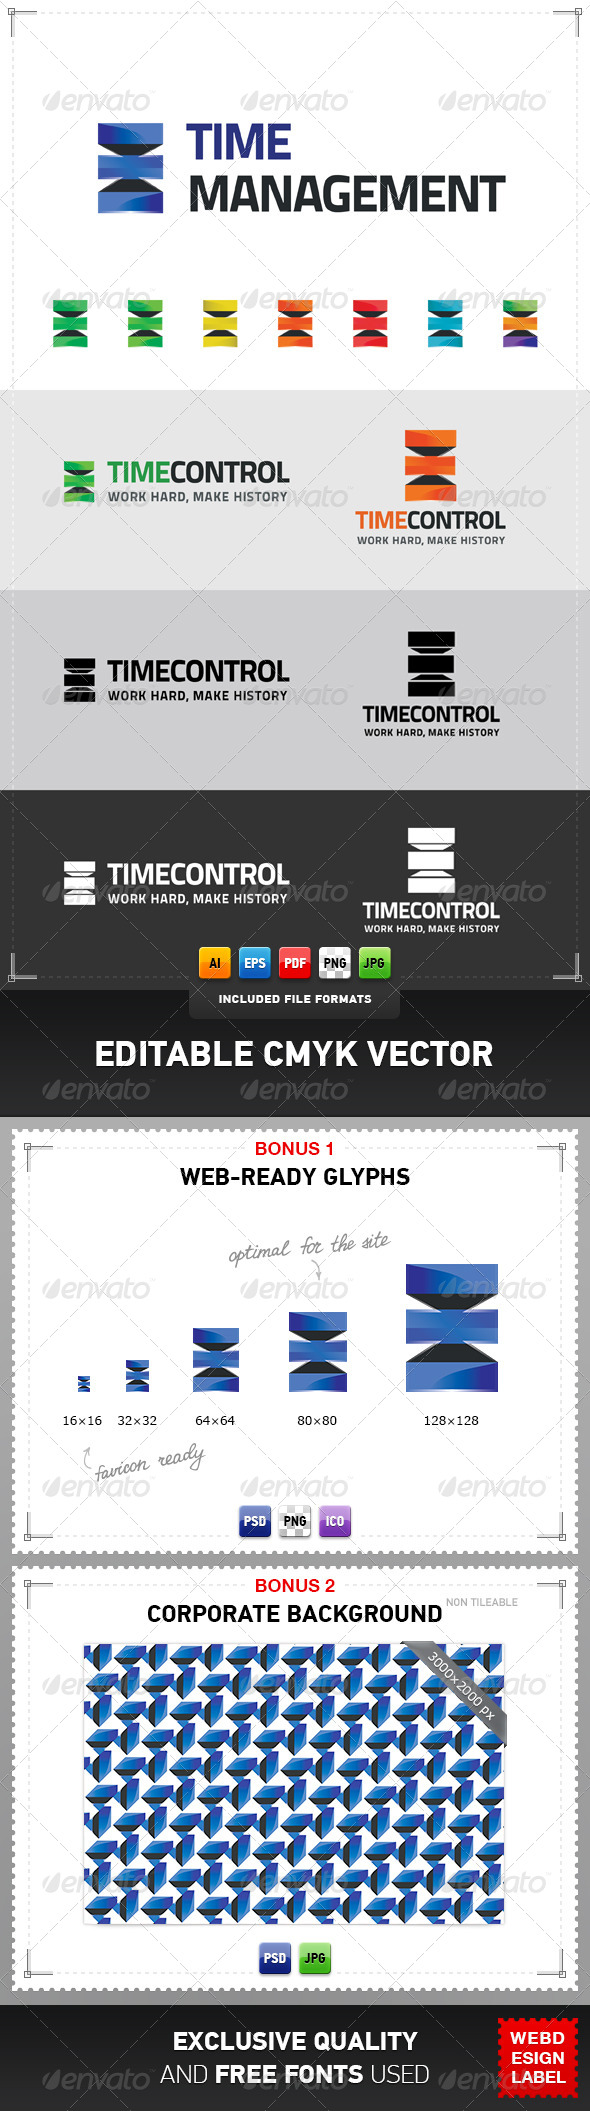 GraphicRiver Time Management Logo 4258119